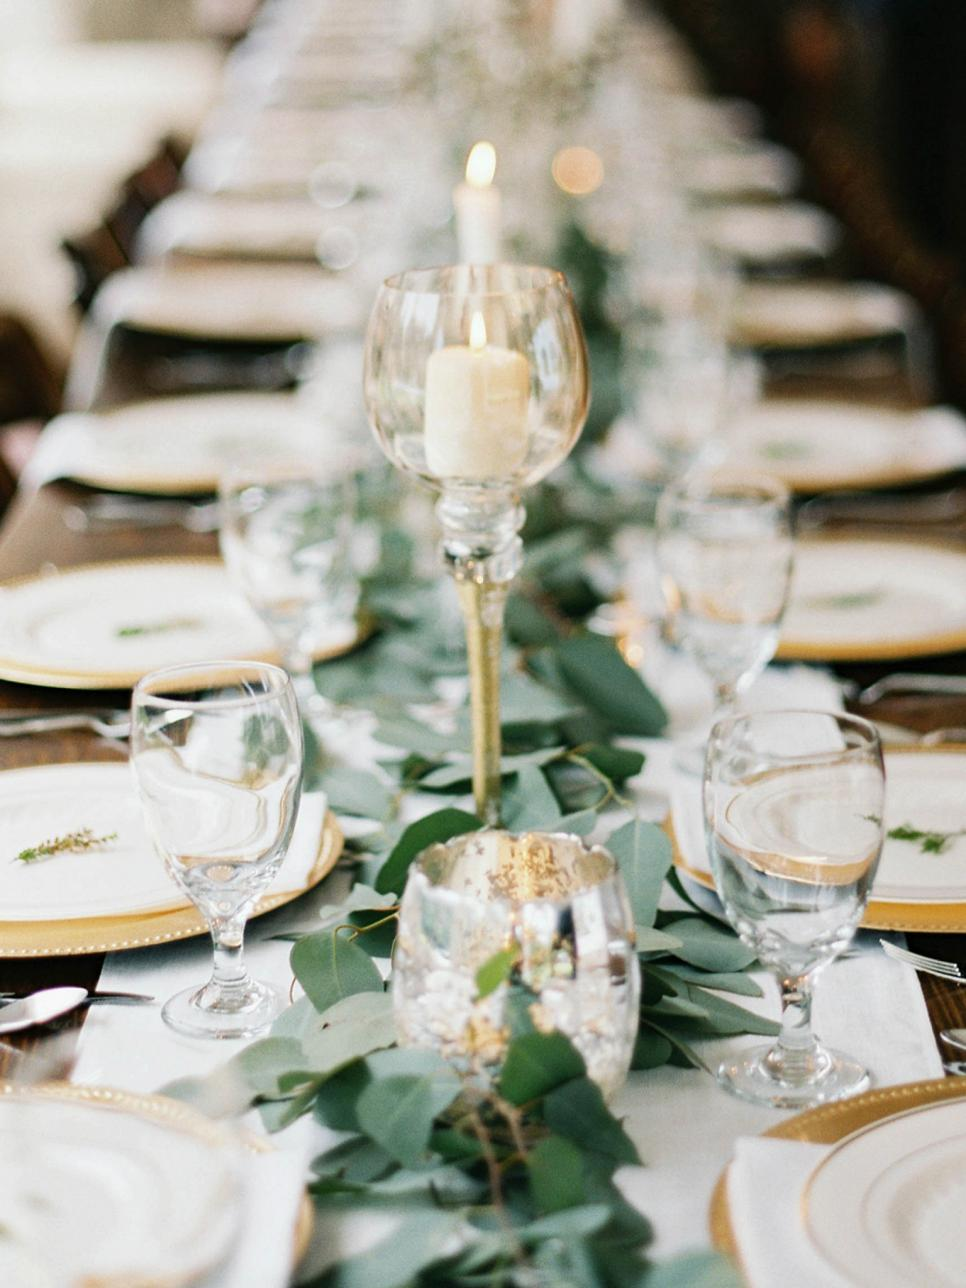 Long Set Table With Greenery Centerpiece and Candles